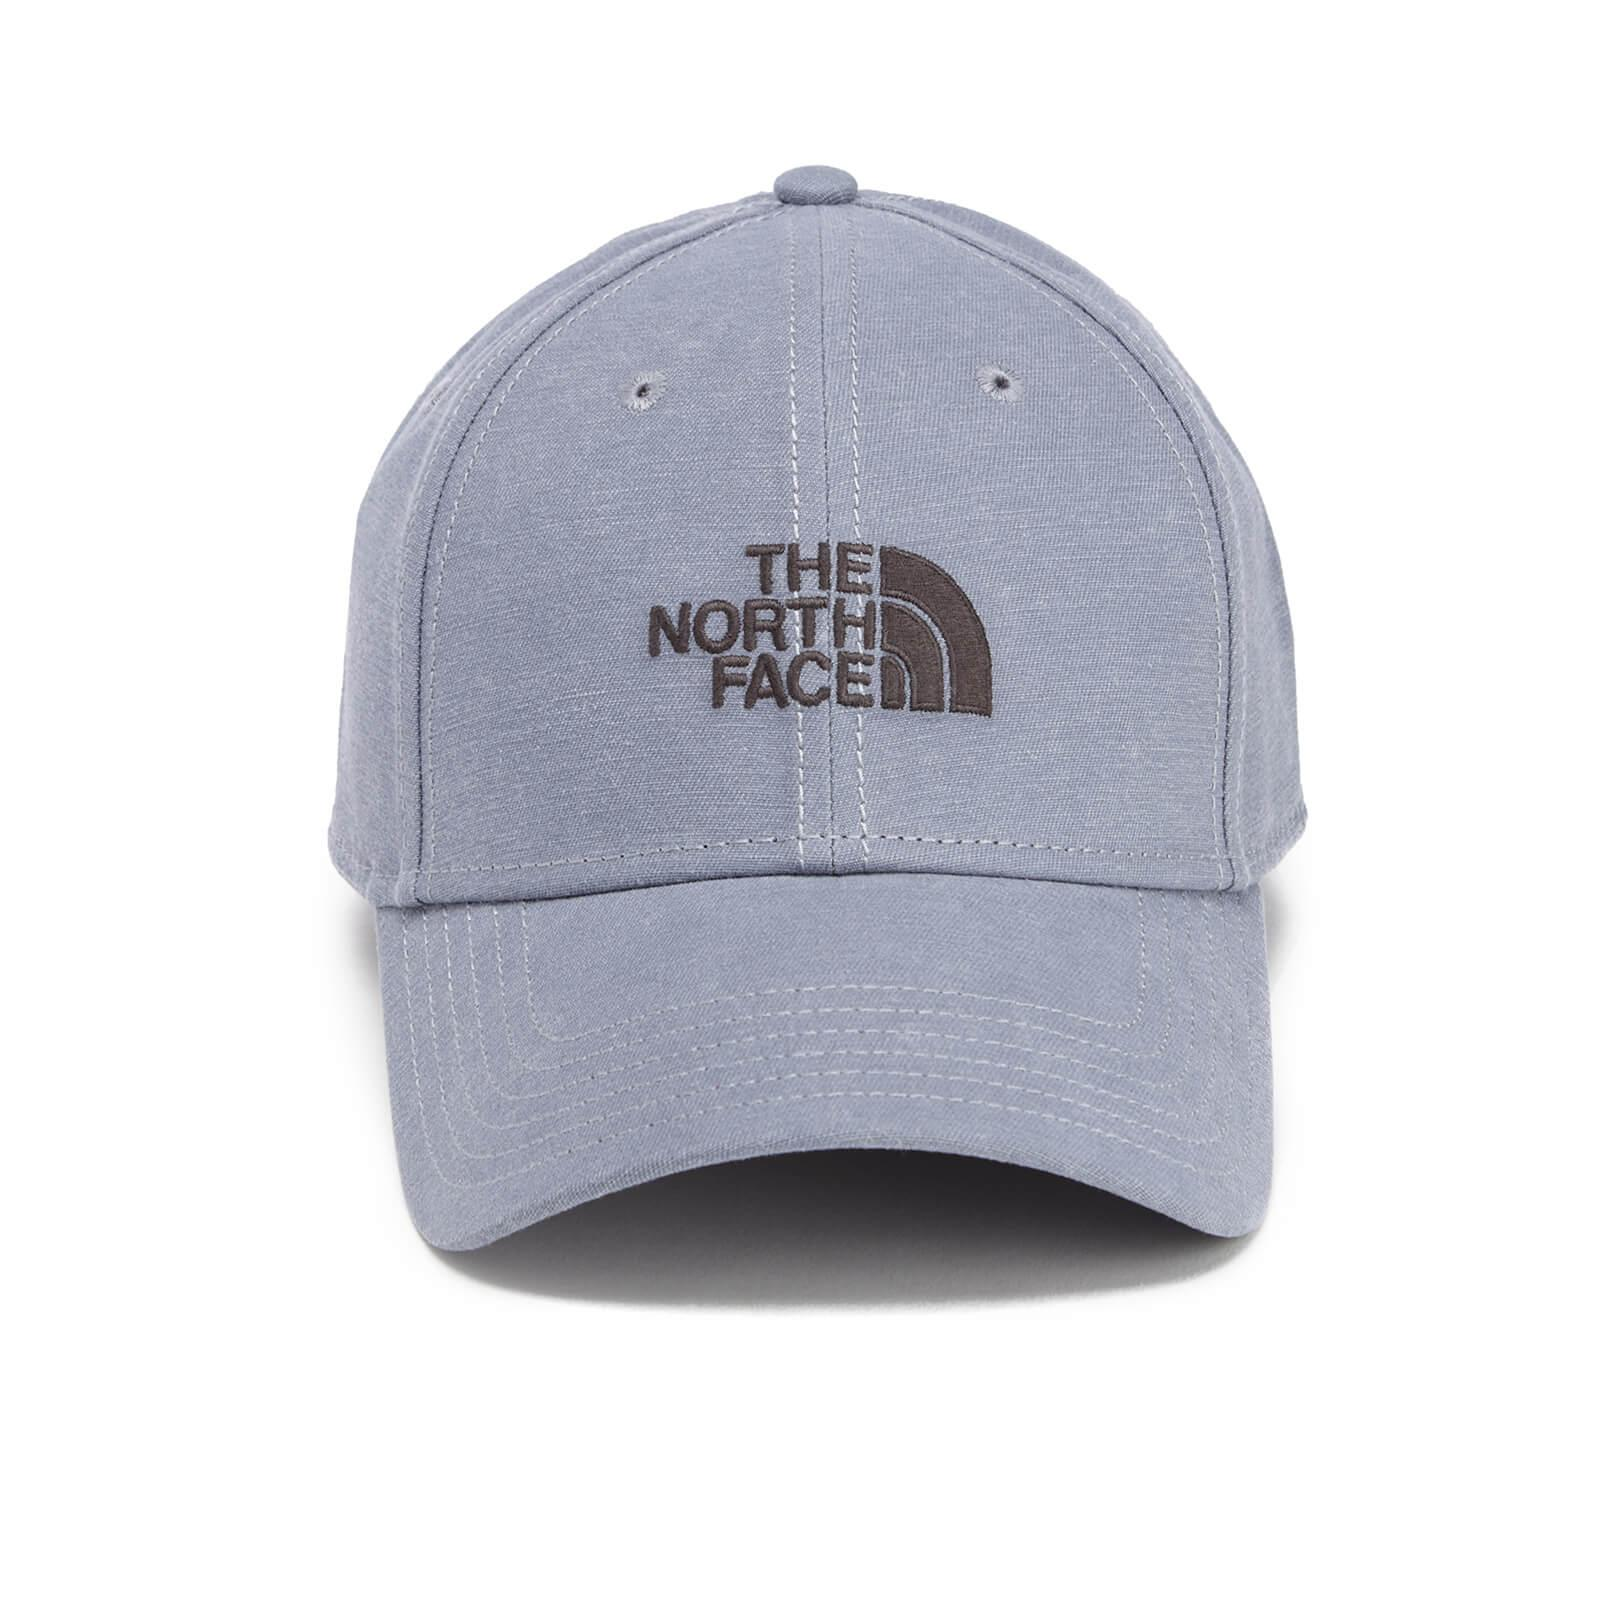 3a4890d573c Lyst - The North Face Classic 66 Hat